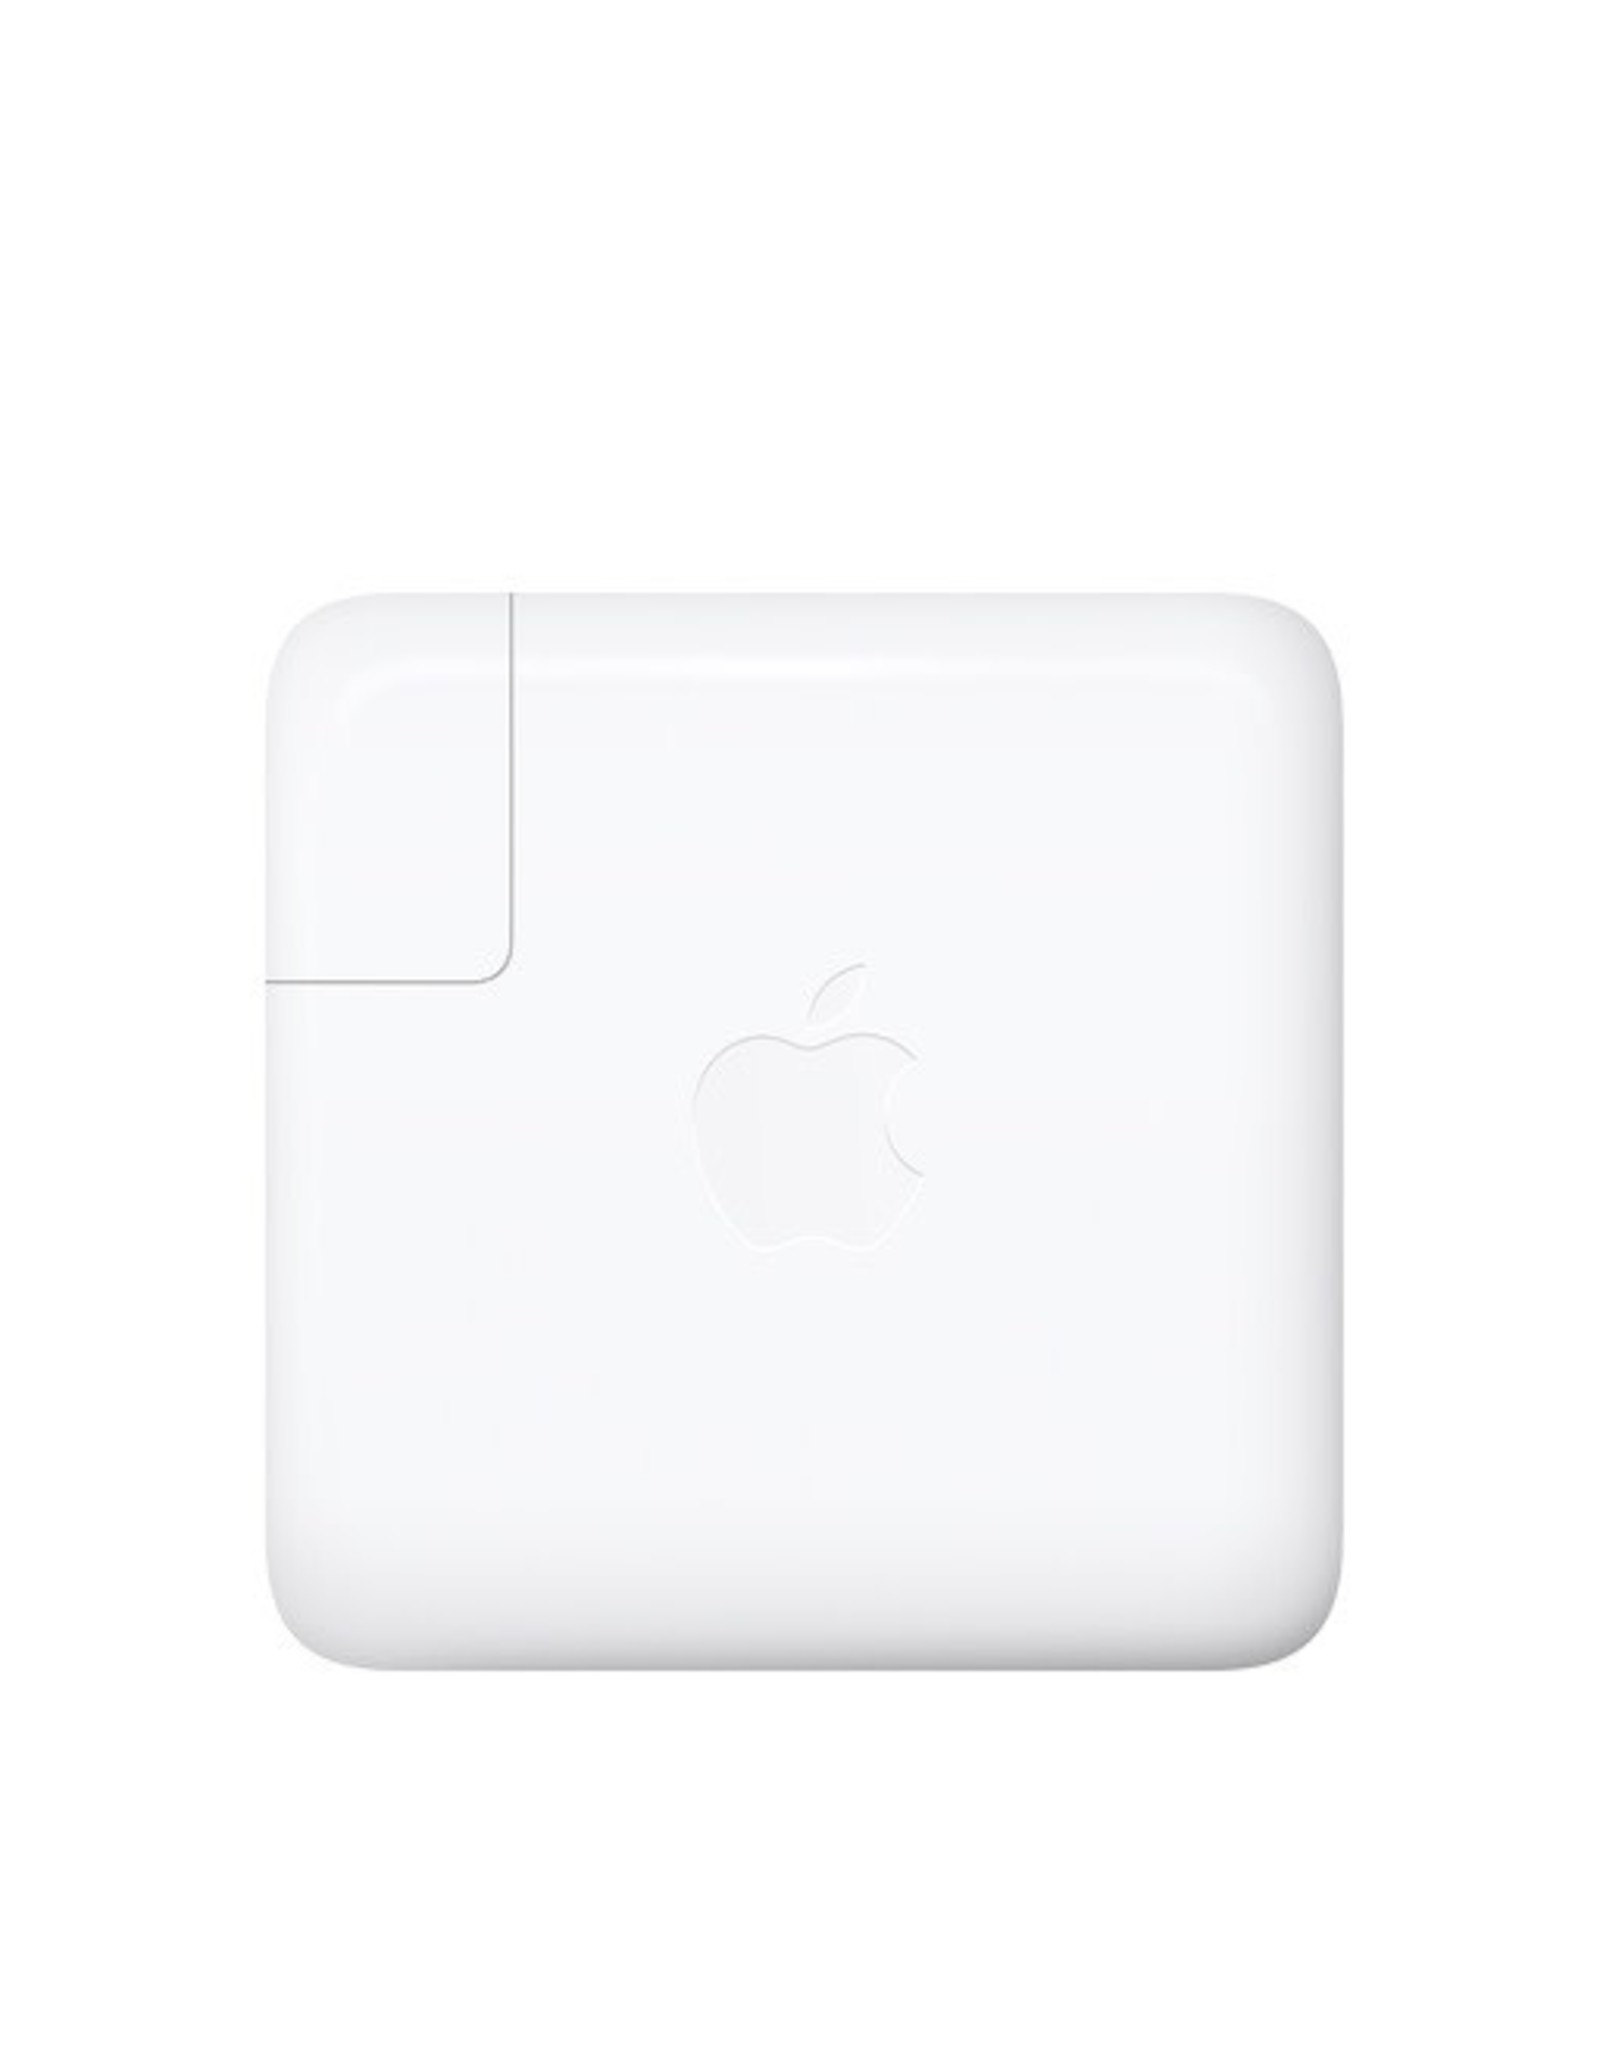 Apple Inst. 96W USB-C Power Adapter